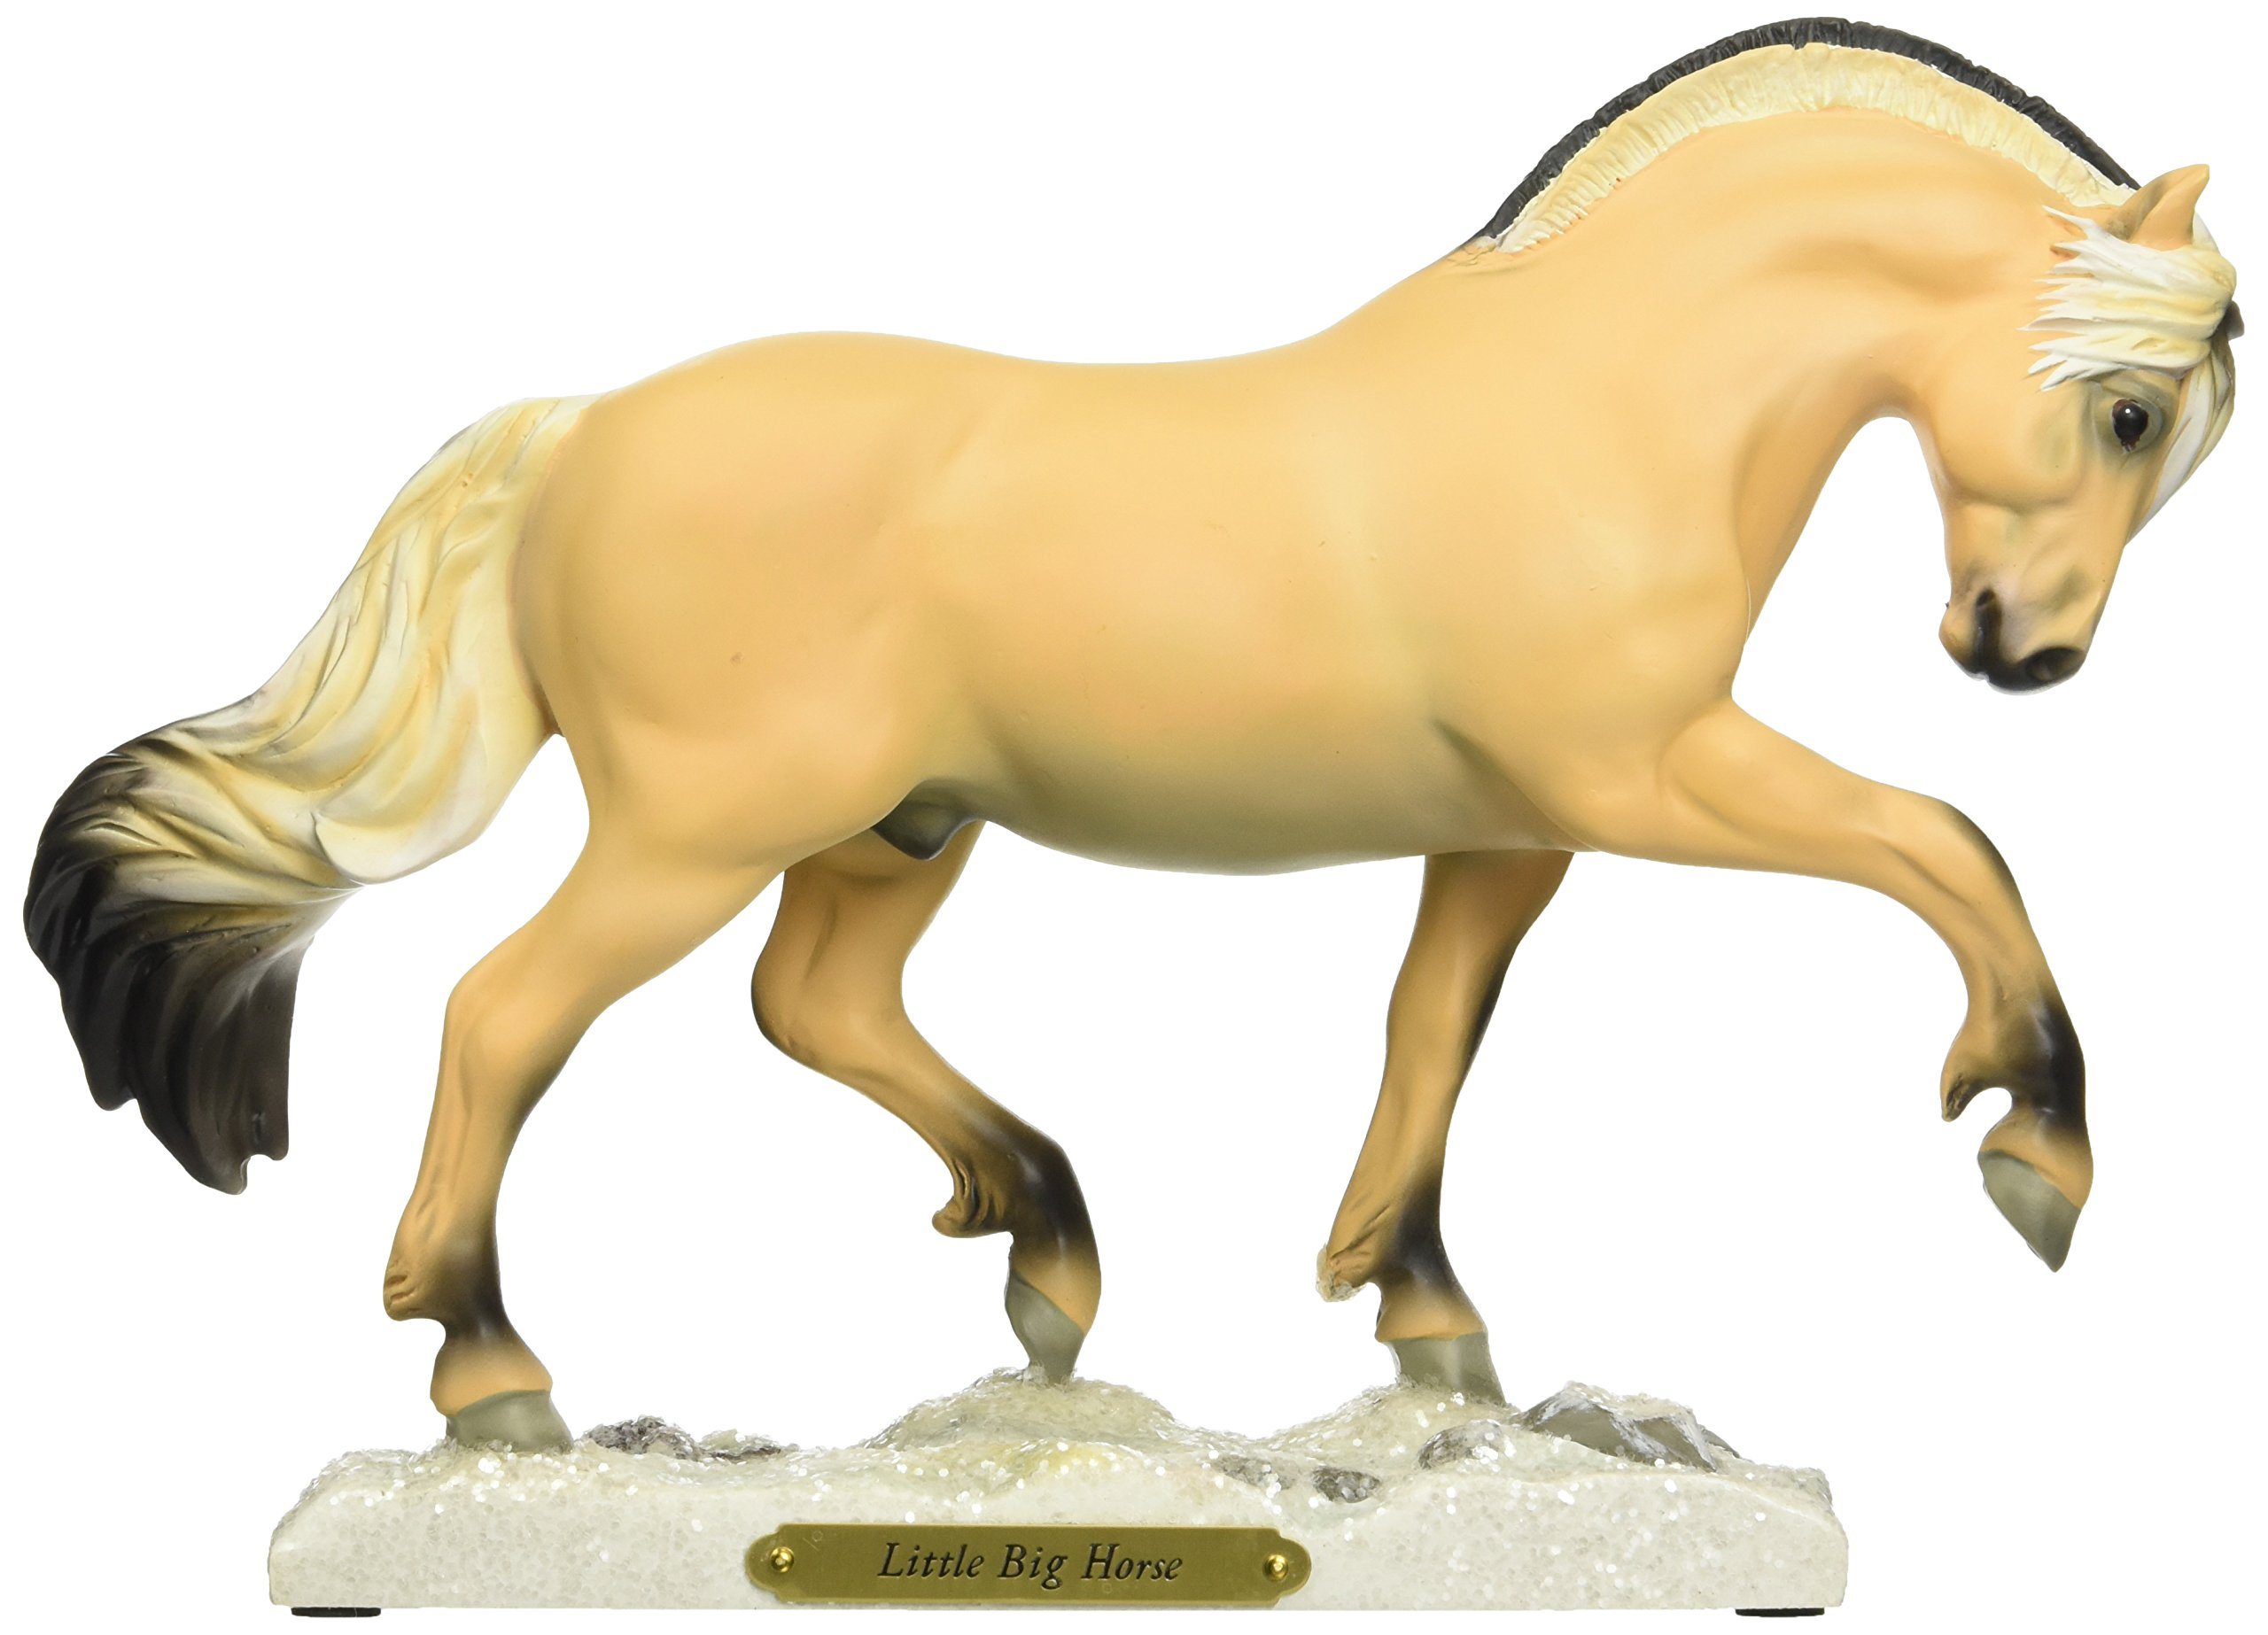 """Enesco Trail of Painted Ponies """"Little Big Horse"""" Stone Resin Horse Figurine, 7.5"""""""